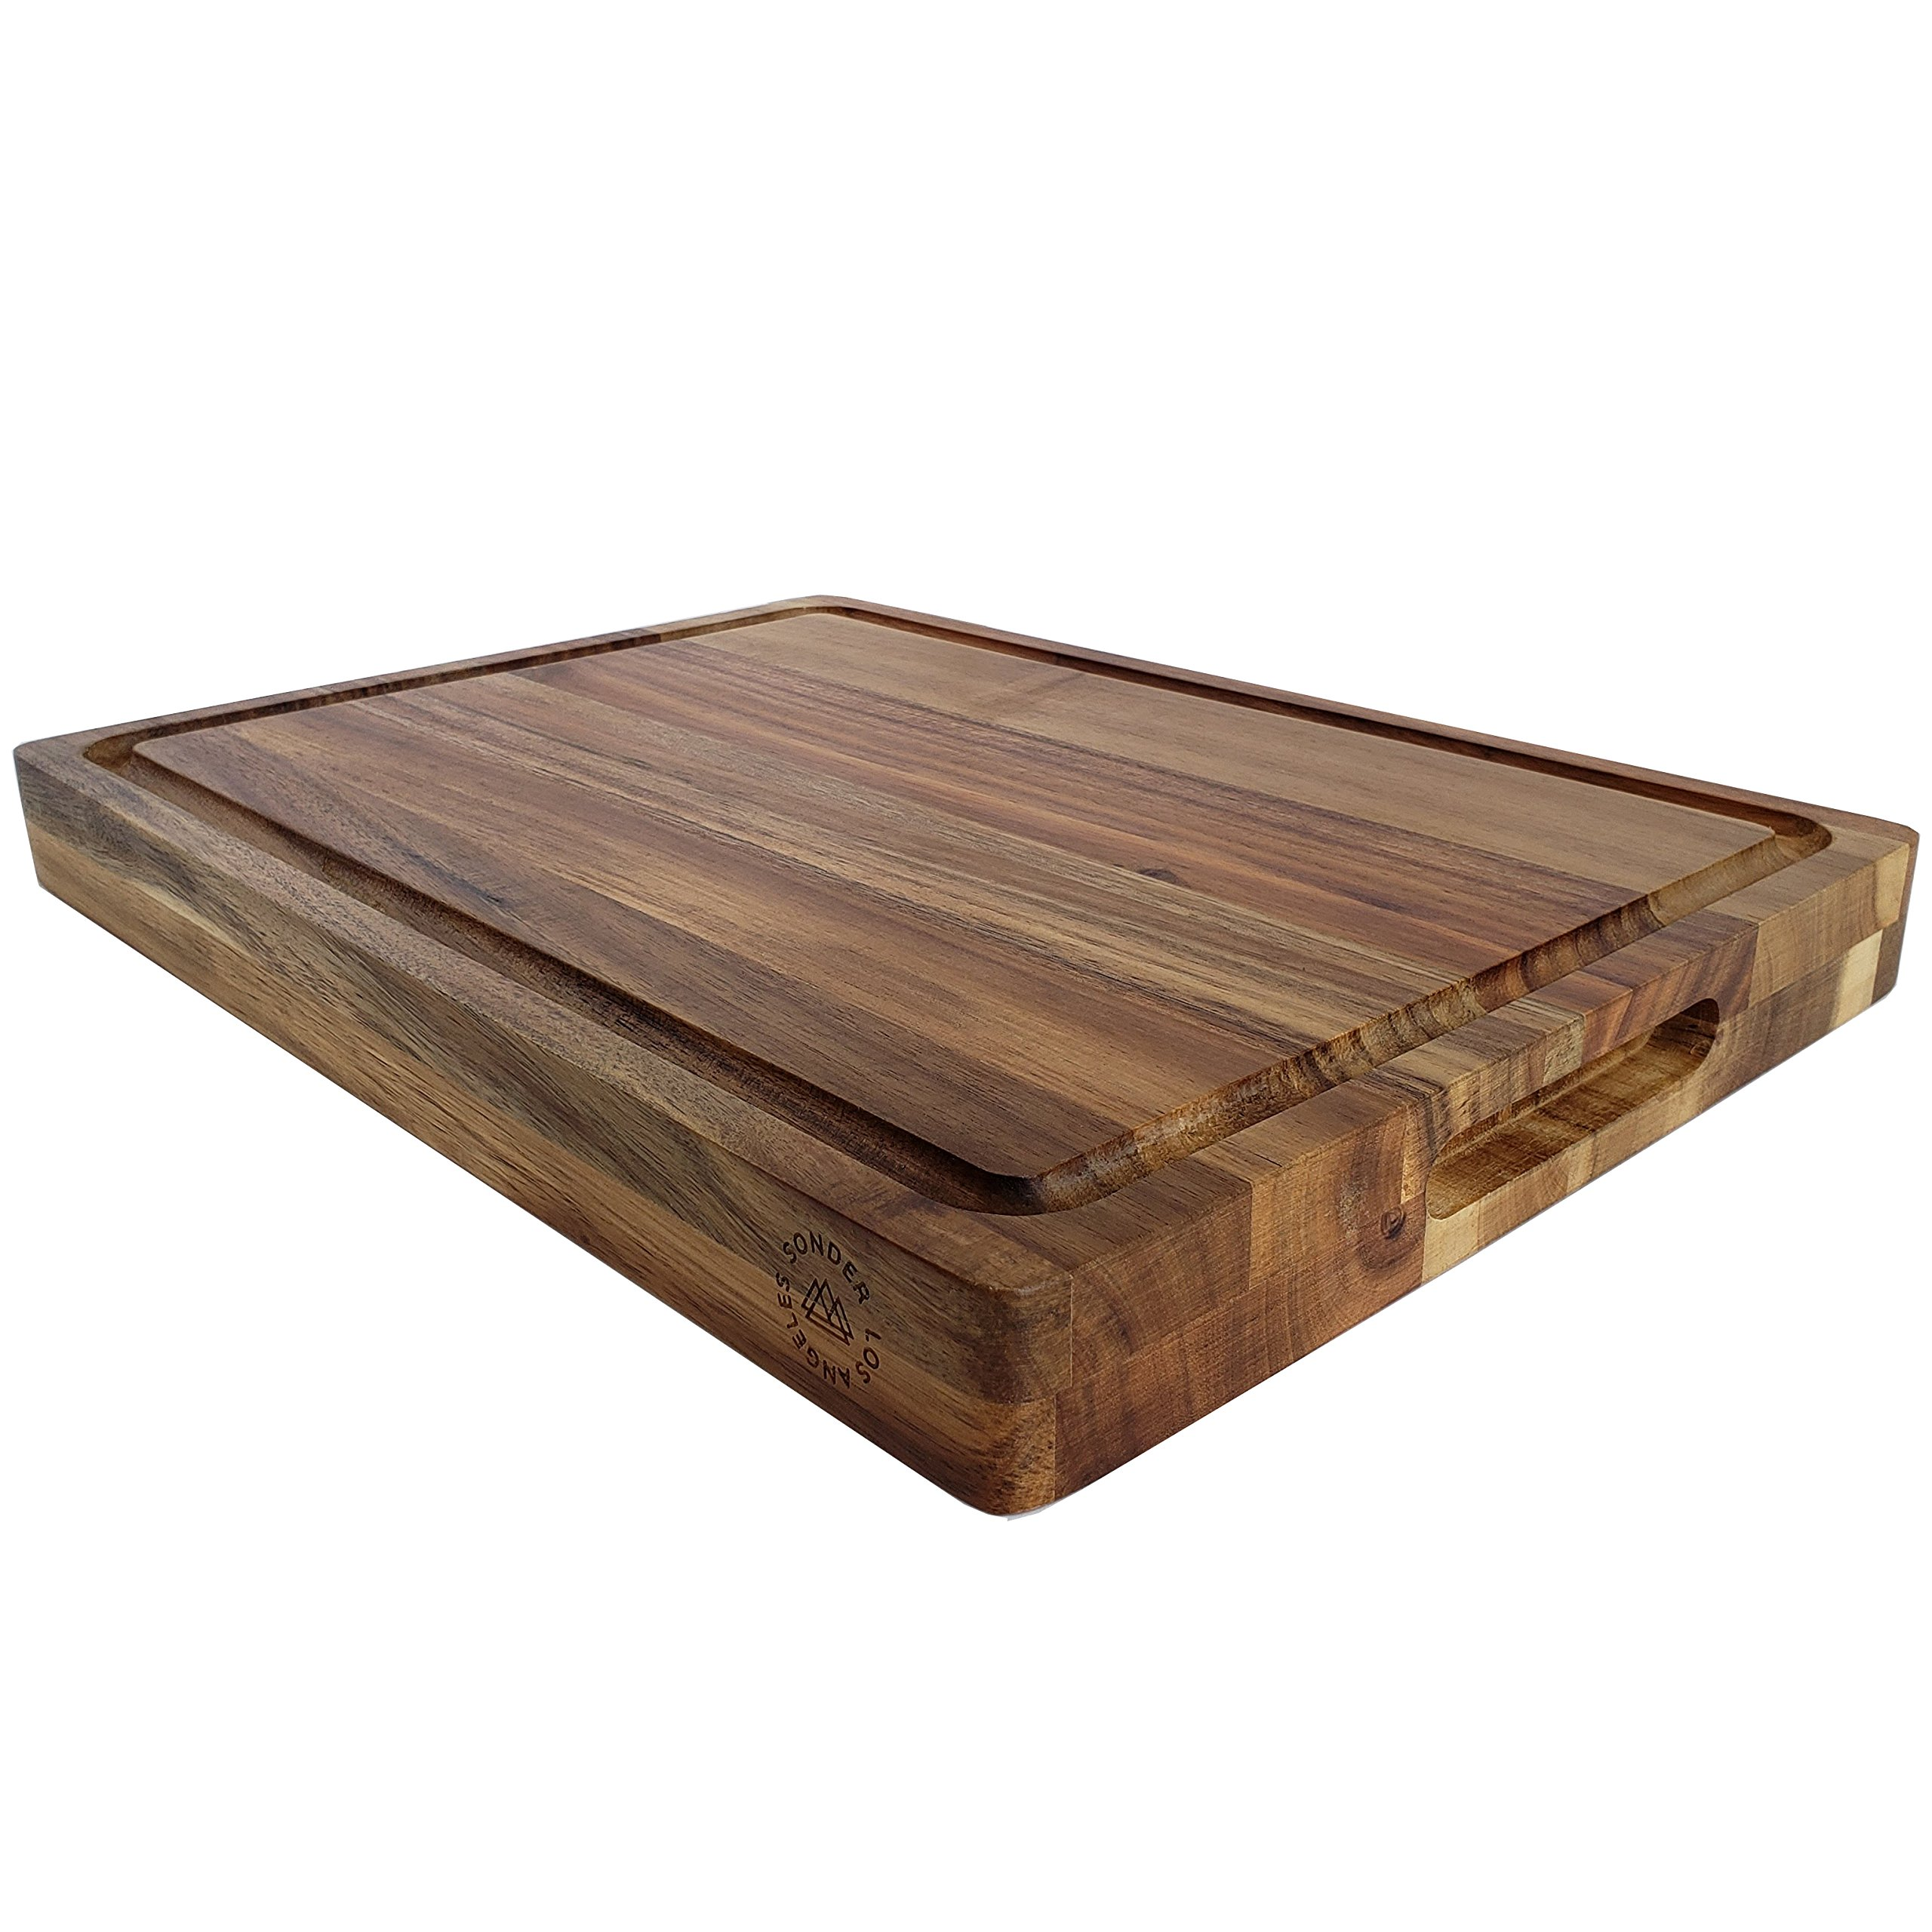 Large Reversible Multipurpose Thick Acacia Wood Cutting Board: 16x12x1.5 Juice Groove & Cracker Holder (Gift Box Included) by Sonder Los Angeles by Sonder Los Angeles